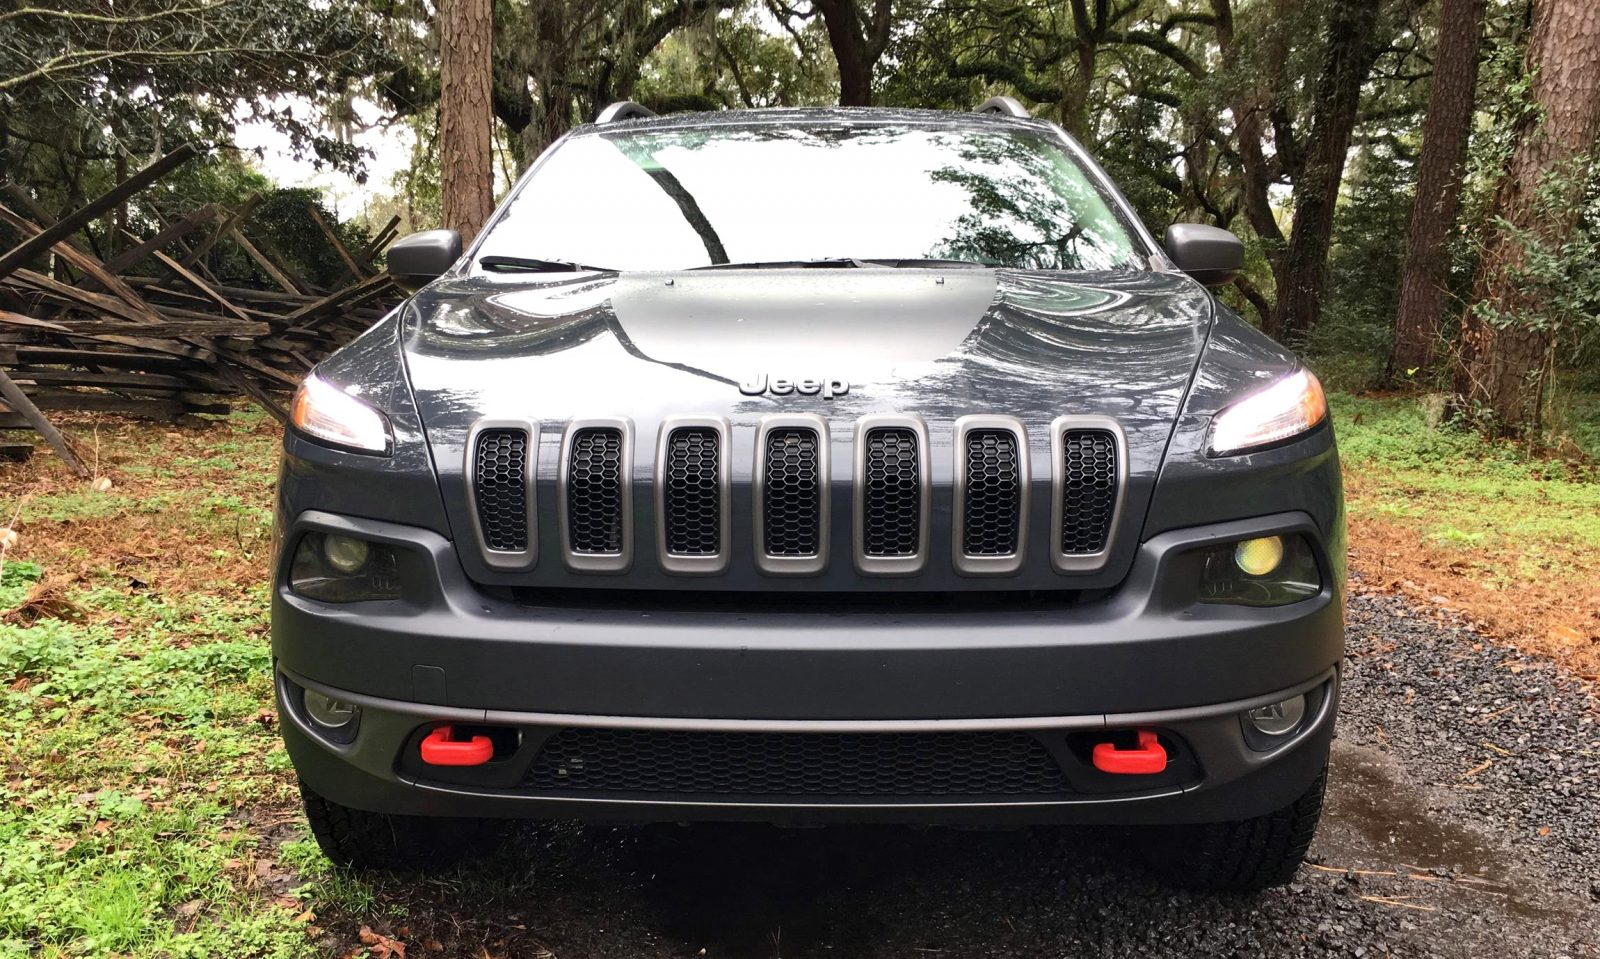 2017 jeep cherokee trailhawk hd road test review plus 2. Black Bedroom Furniture Sets. Home Design Ideas